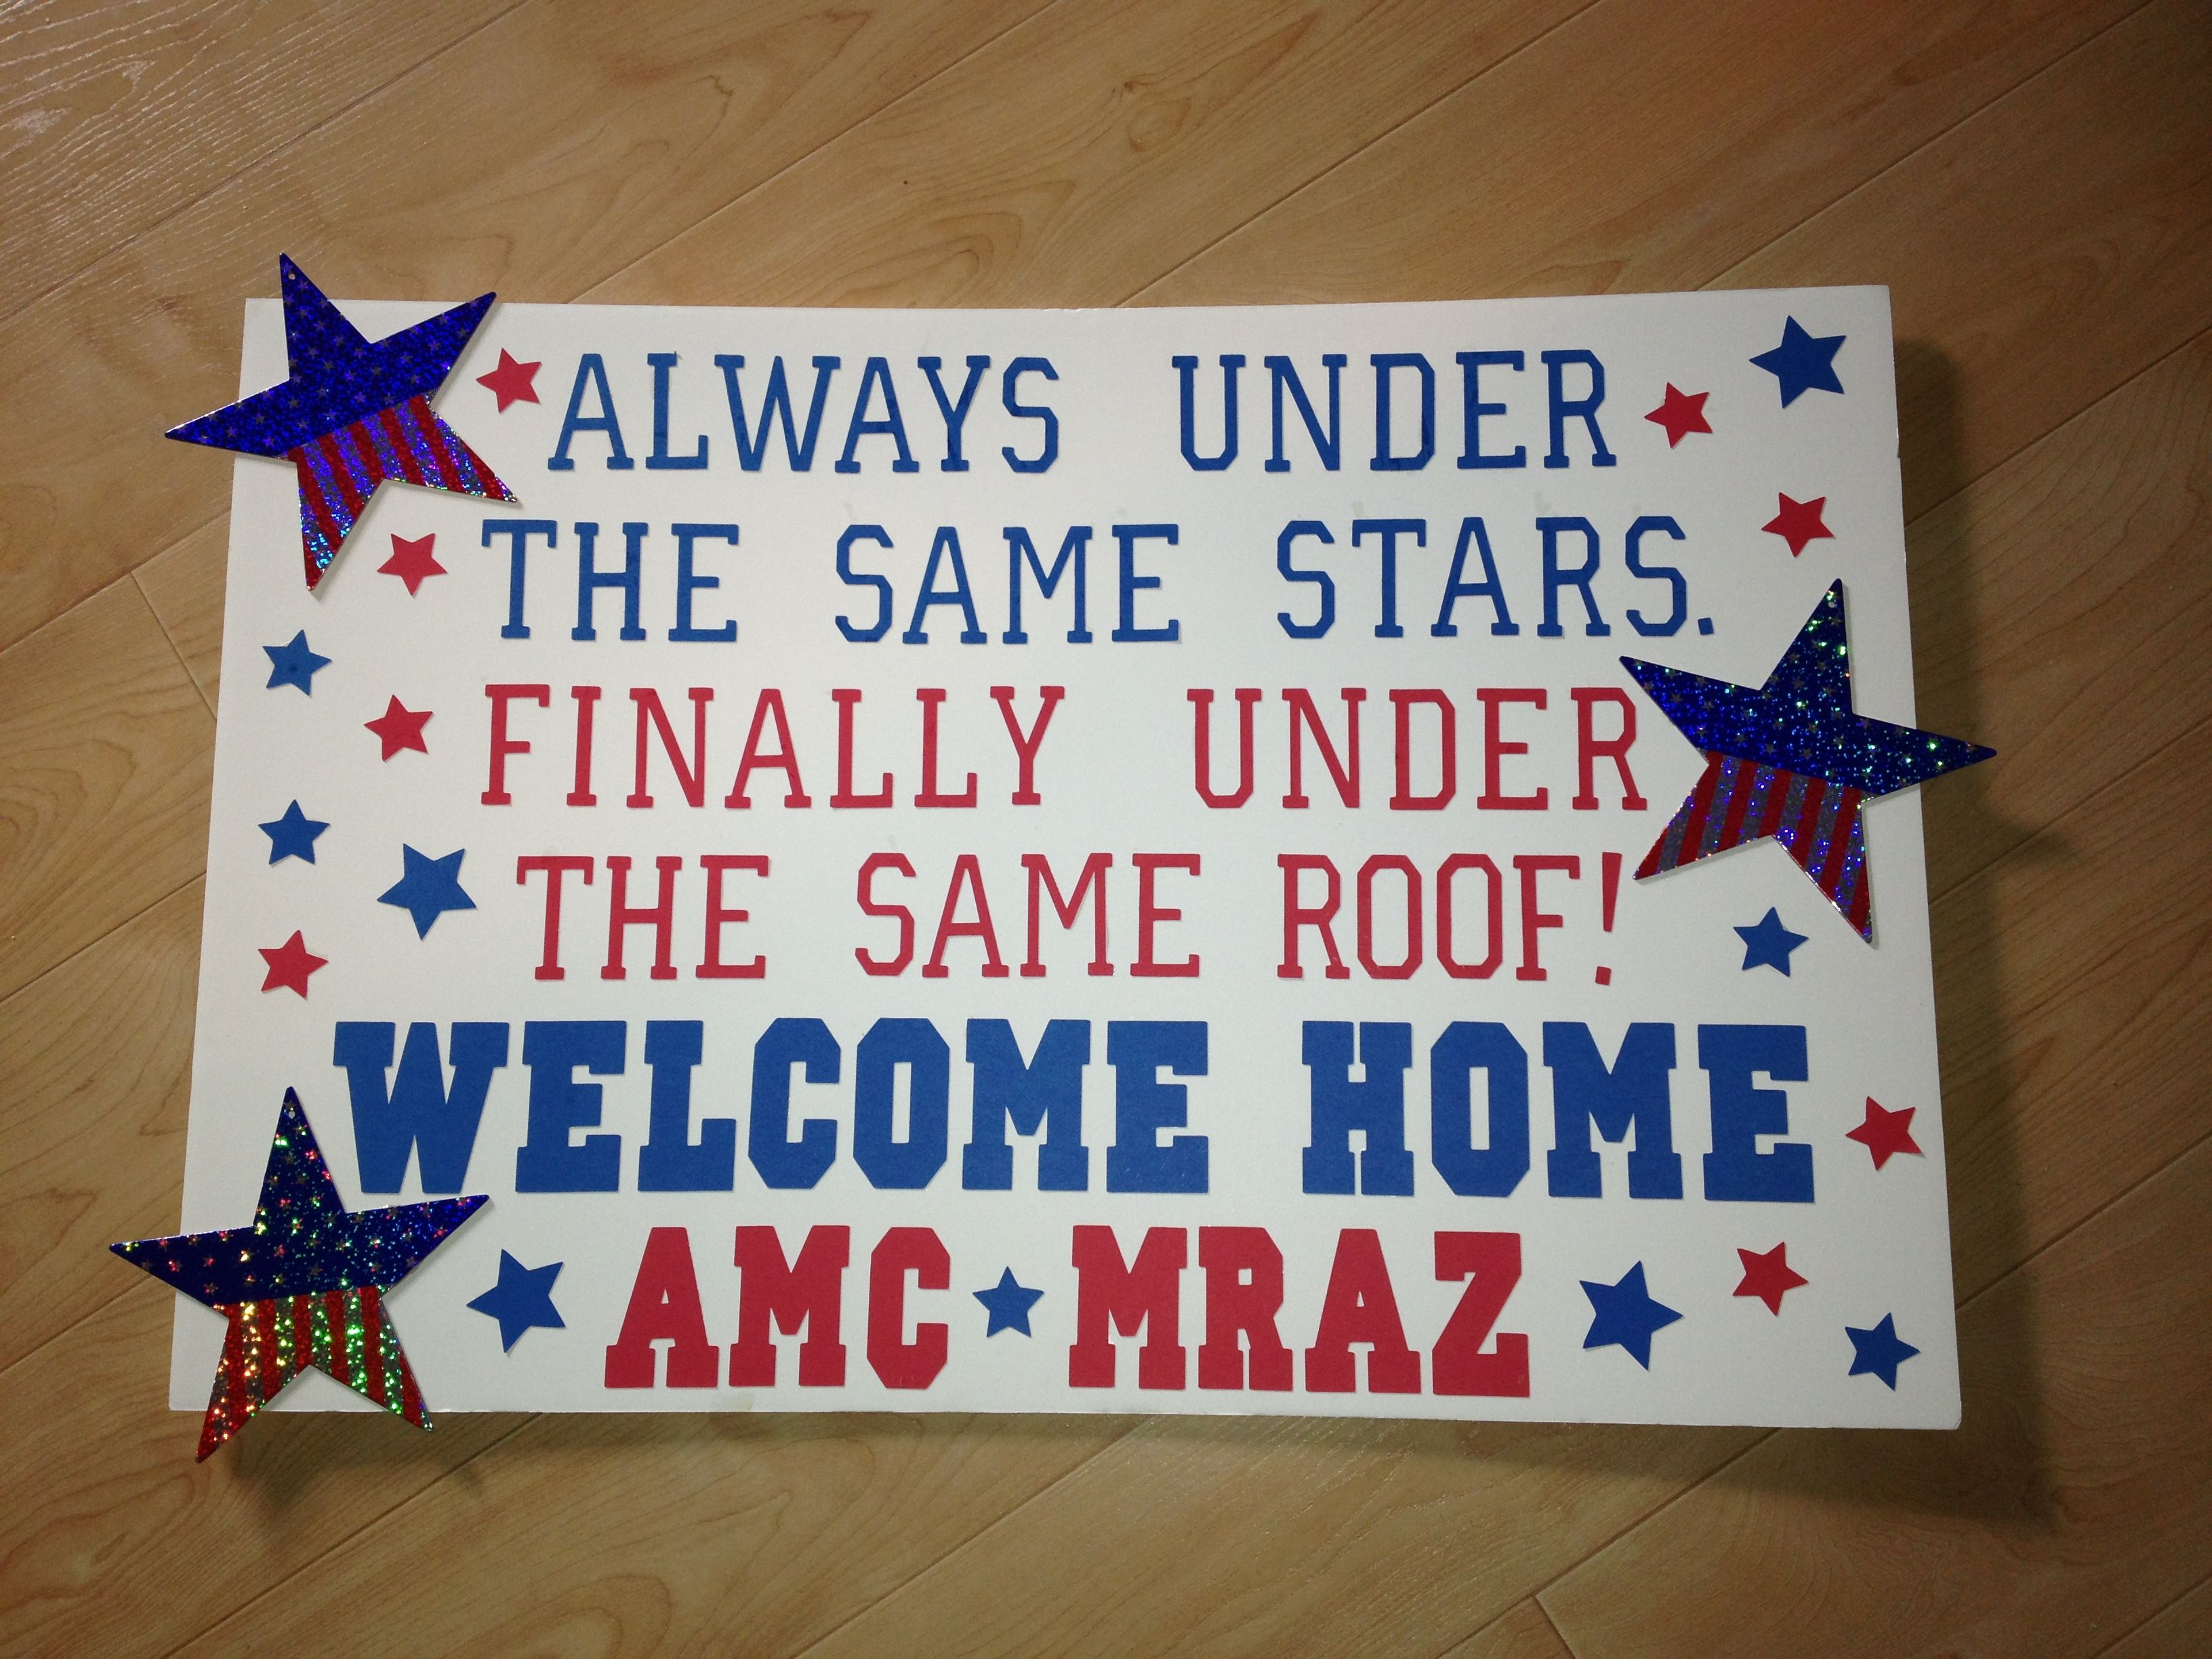 Best 25 poster ideas ideas on pinterest graphic design for Welcome home troops decorations